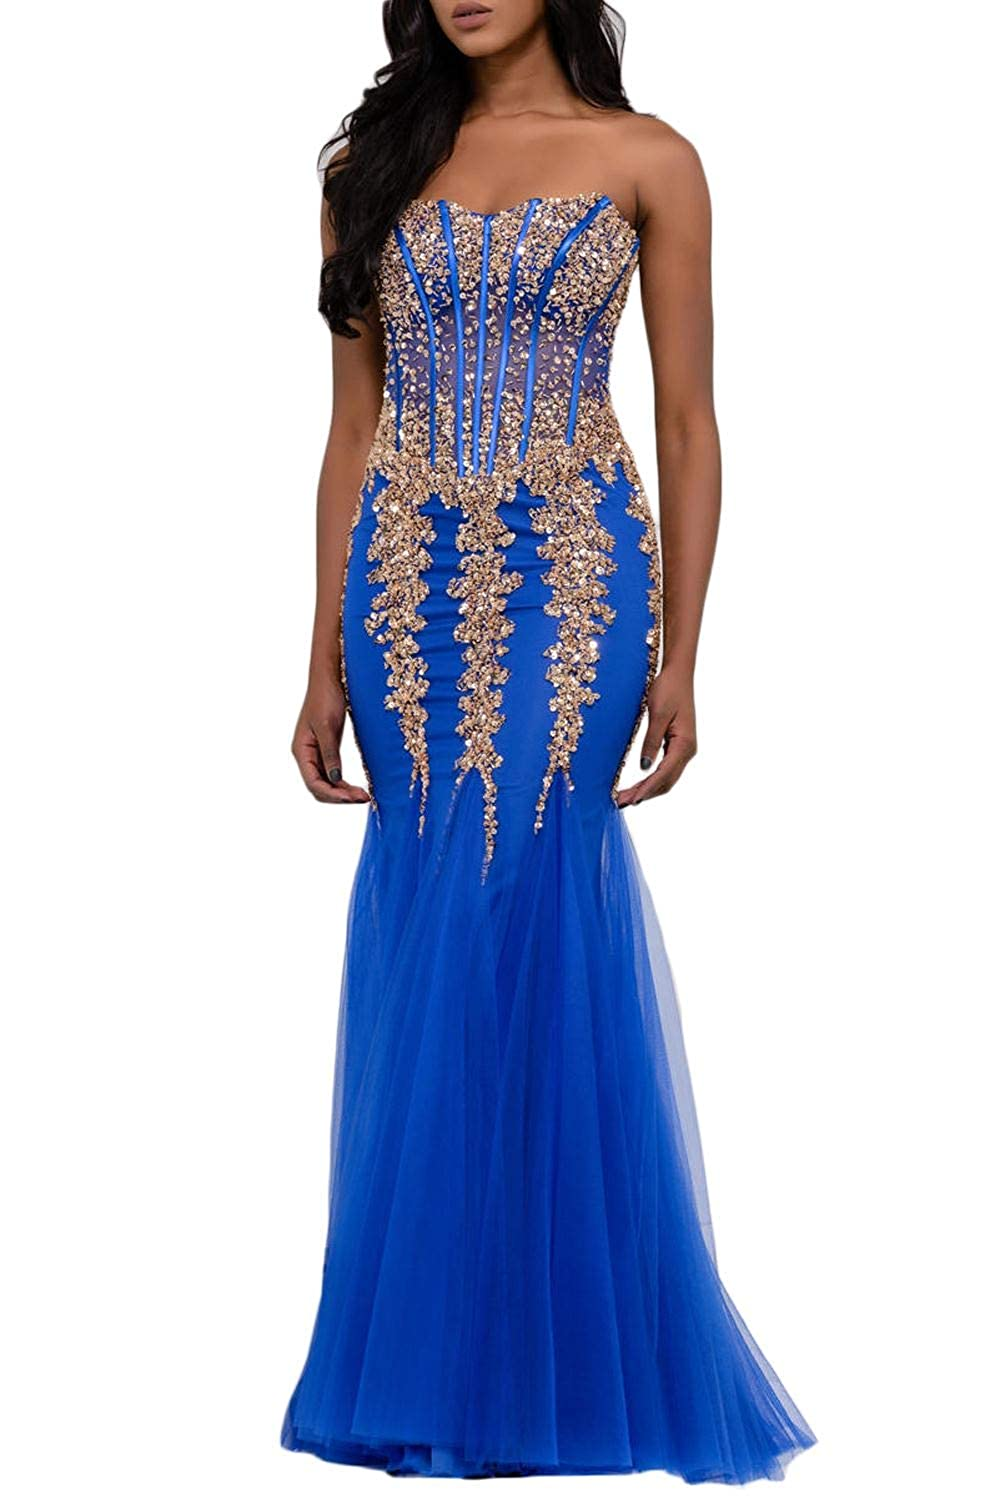 Royal bluee Yisha Bello Women's Sweetheart Strapless Crystal Beaded Mermaid Formal Prom Evening Dresses